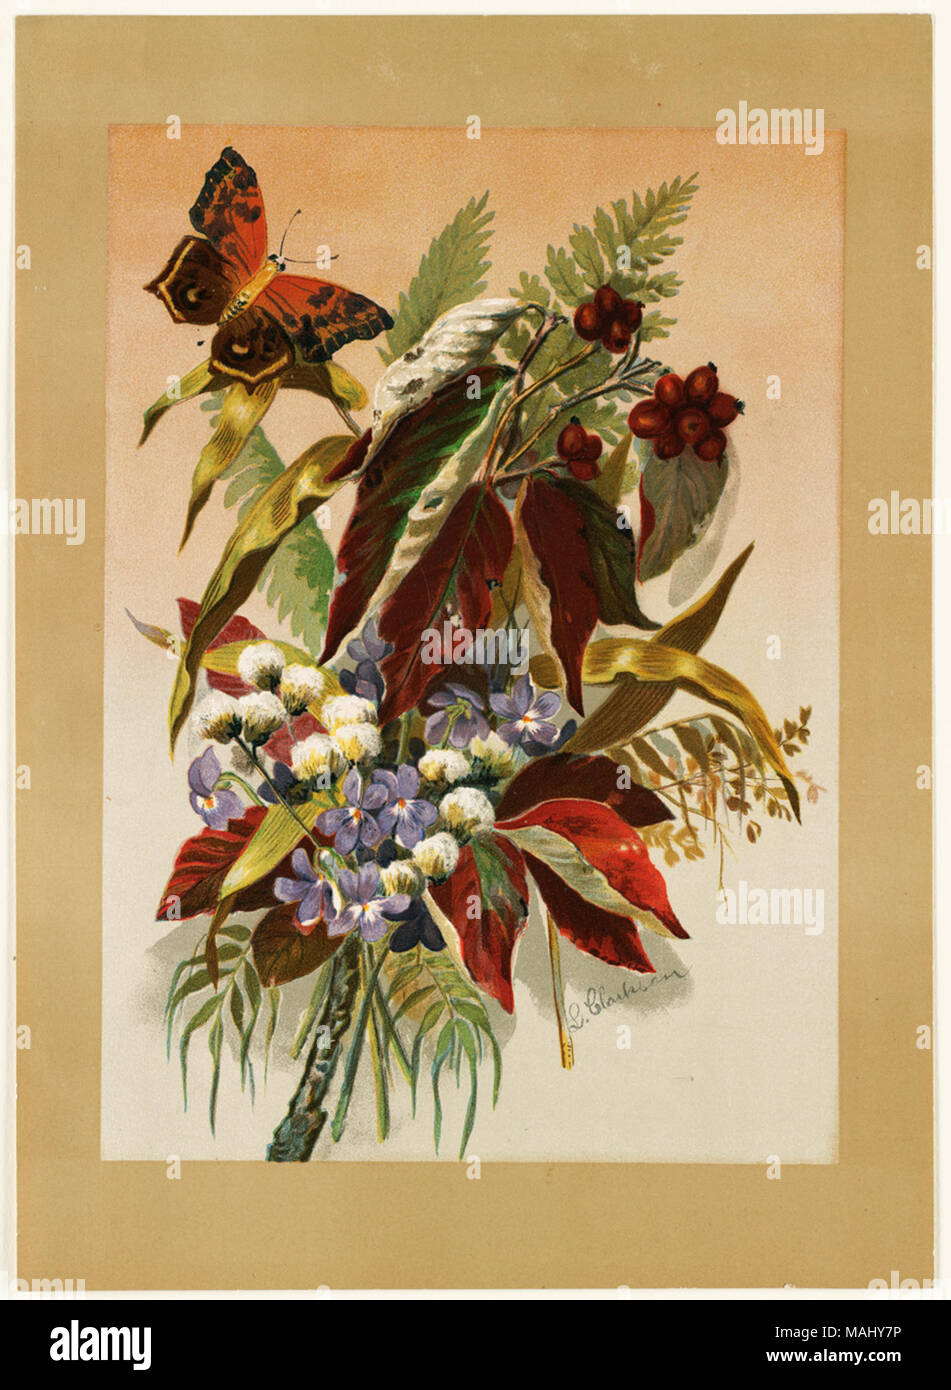 Autumn Leaves With Black Berries By Louise Clarkson Whitelock Floral Print